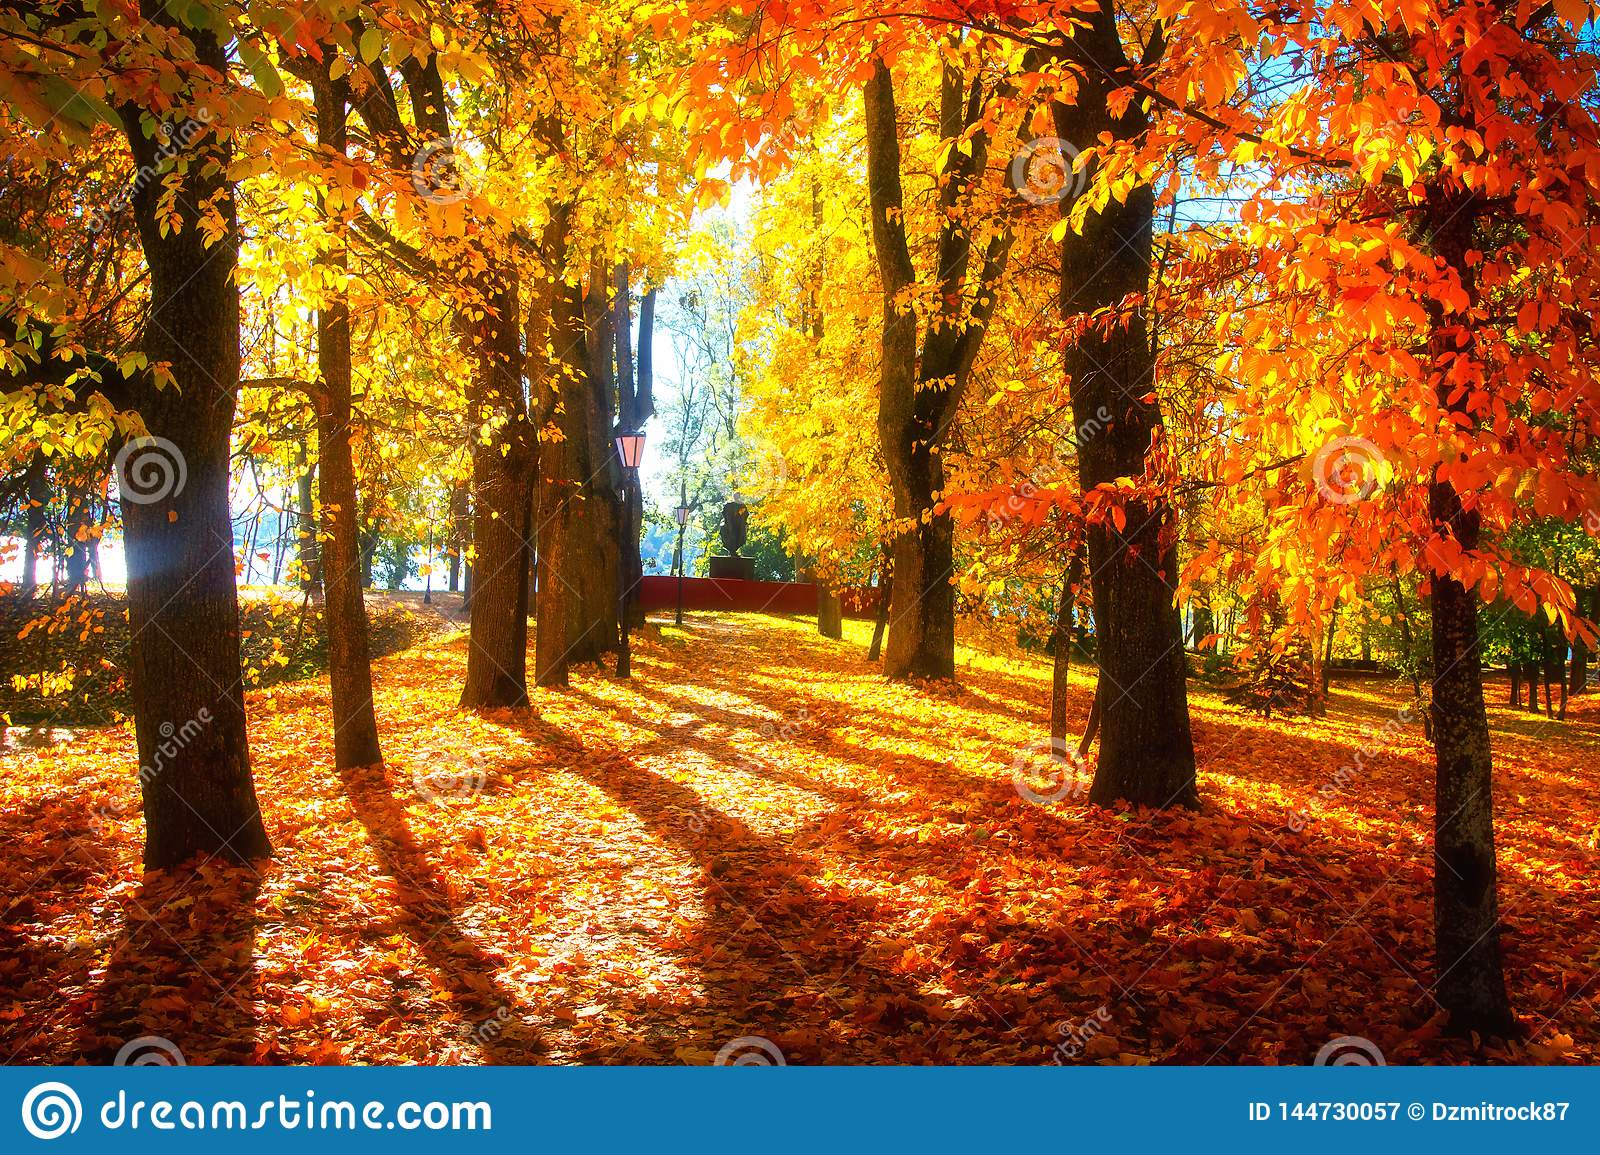 786 918 Autumn Trees Photos Free Royalty Free Stock Photos From Dreamstime